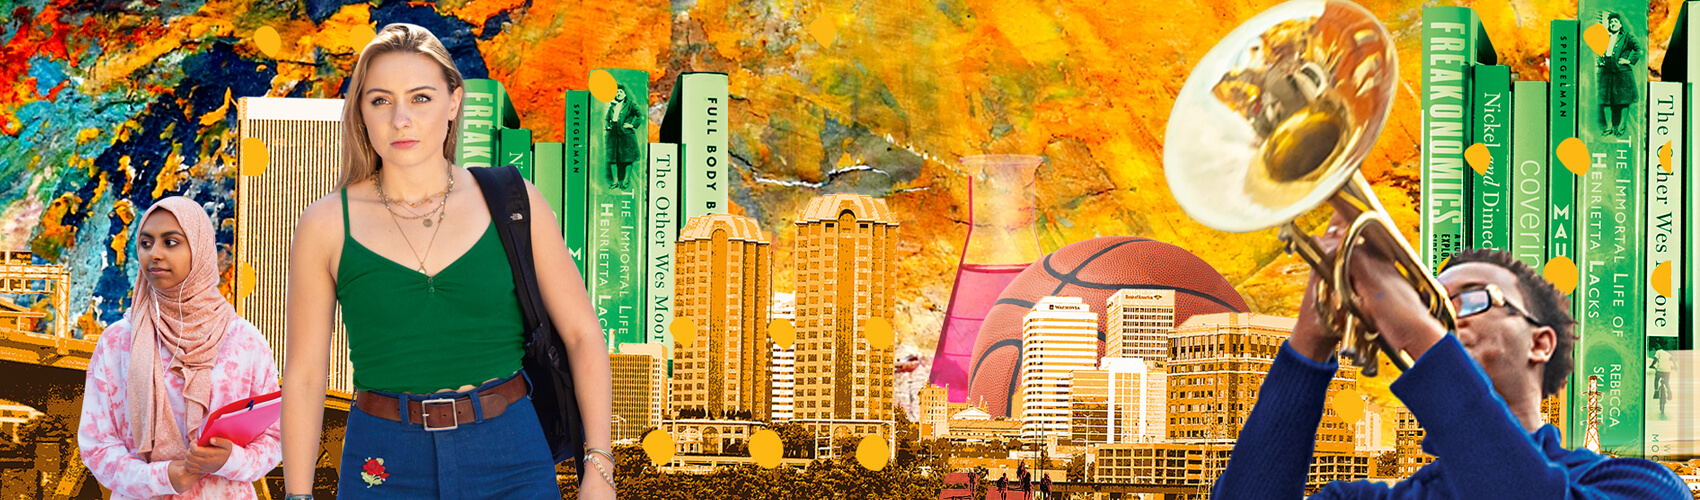 collage of Richmond city skyline mixed with books, students and swirls of color